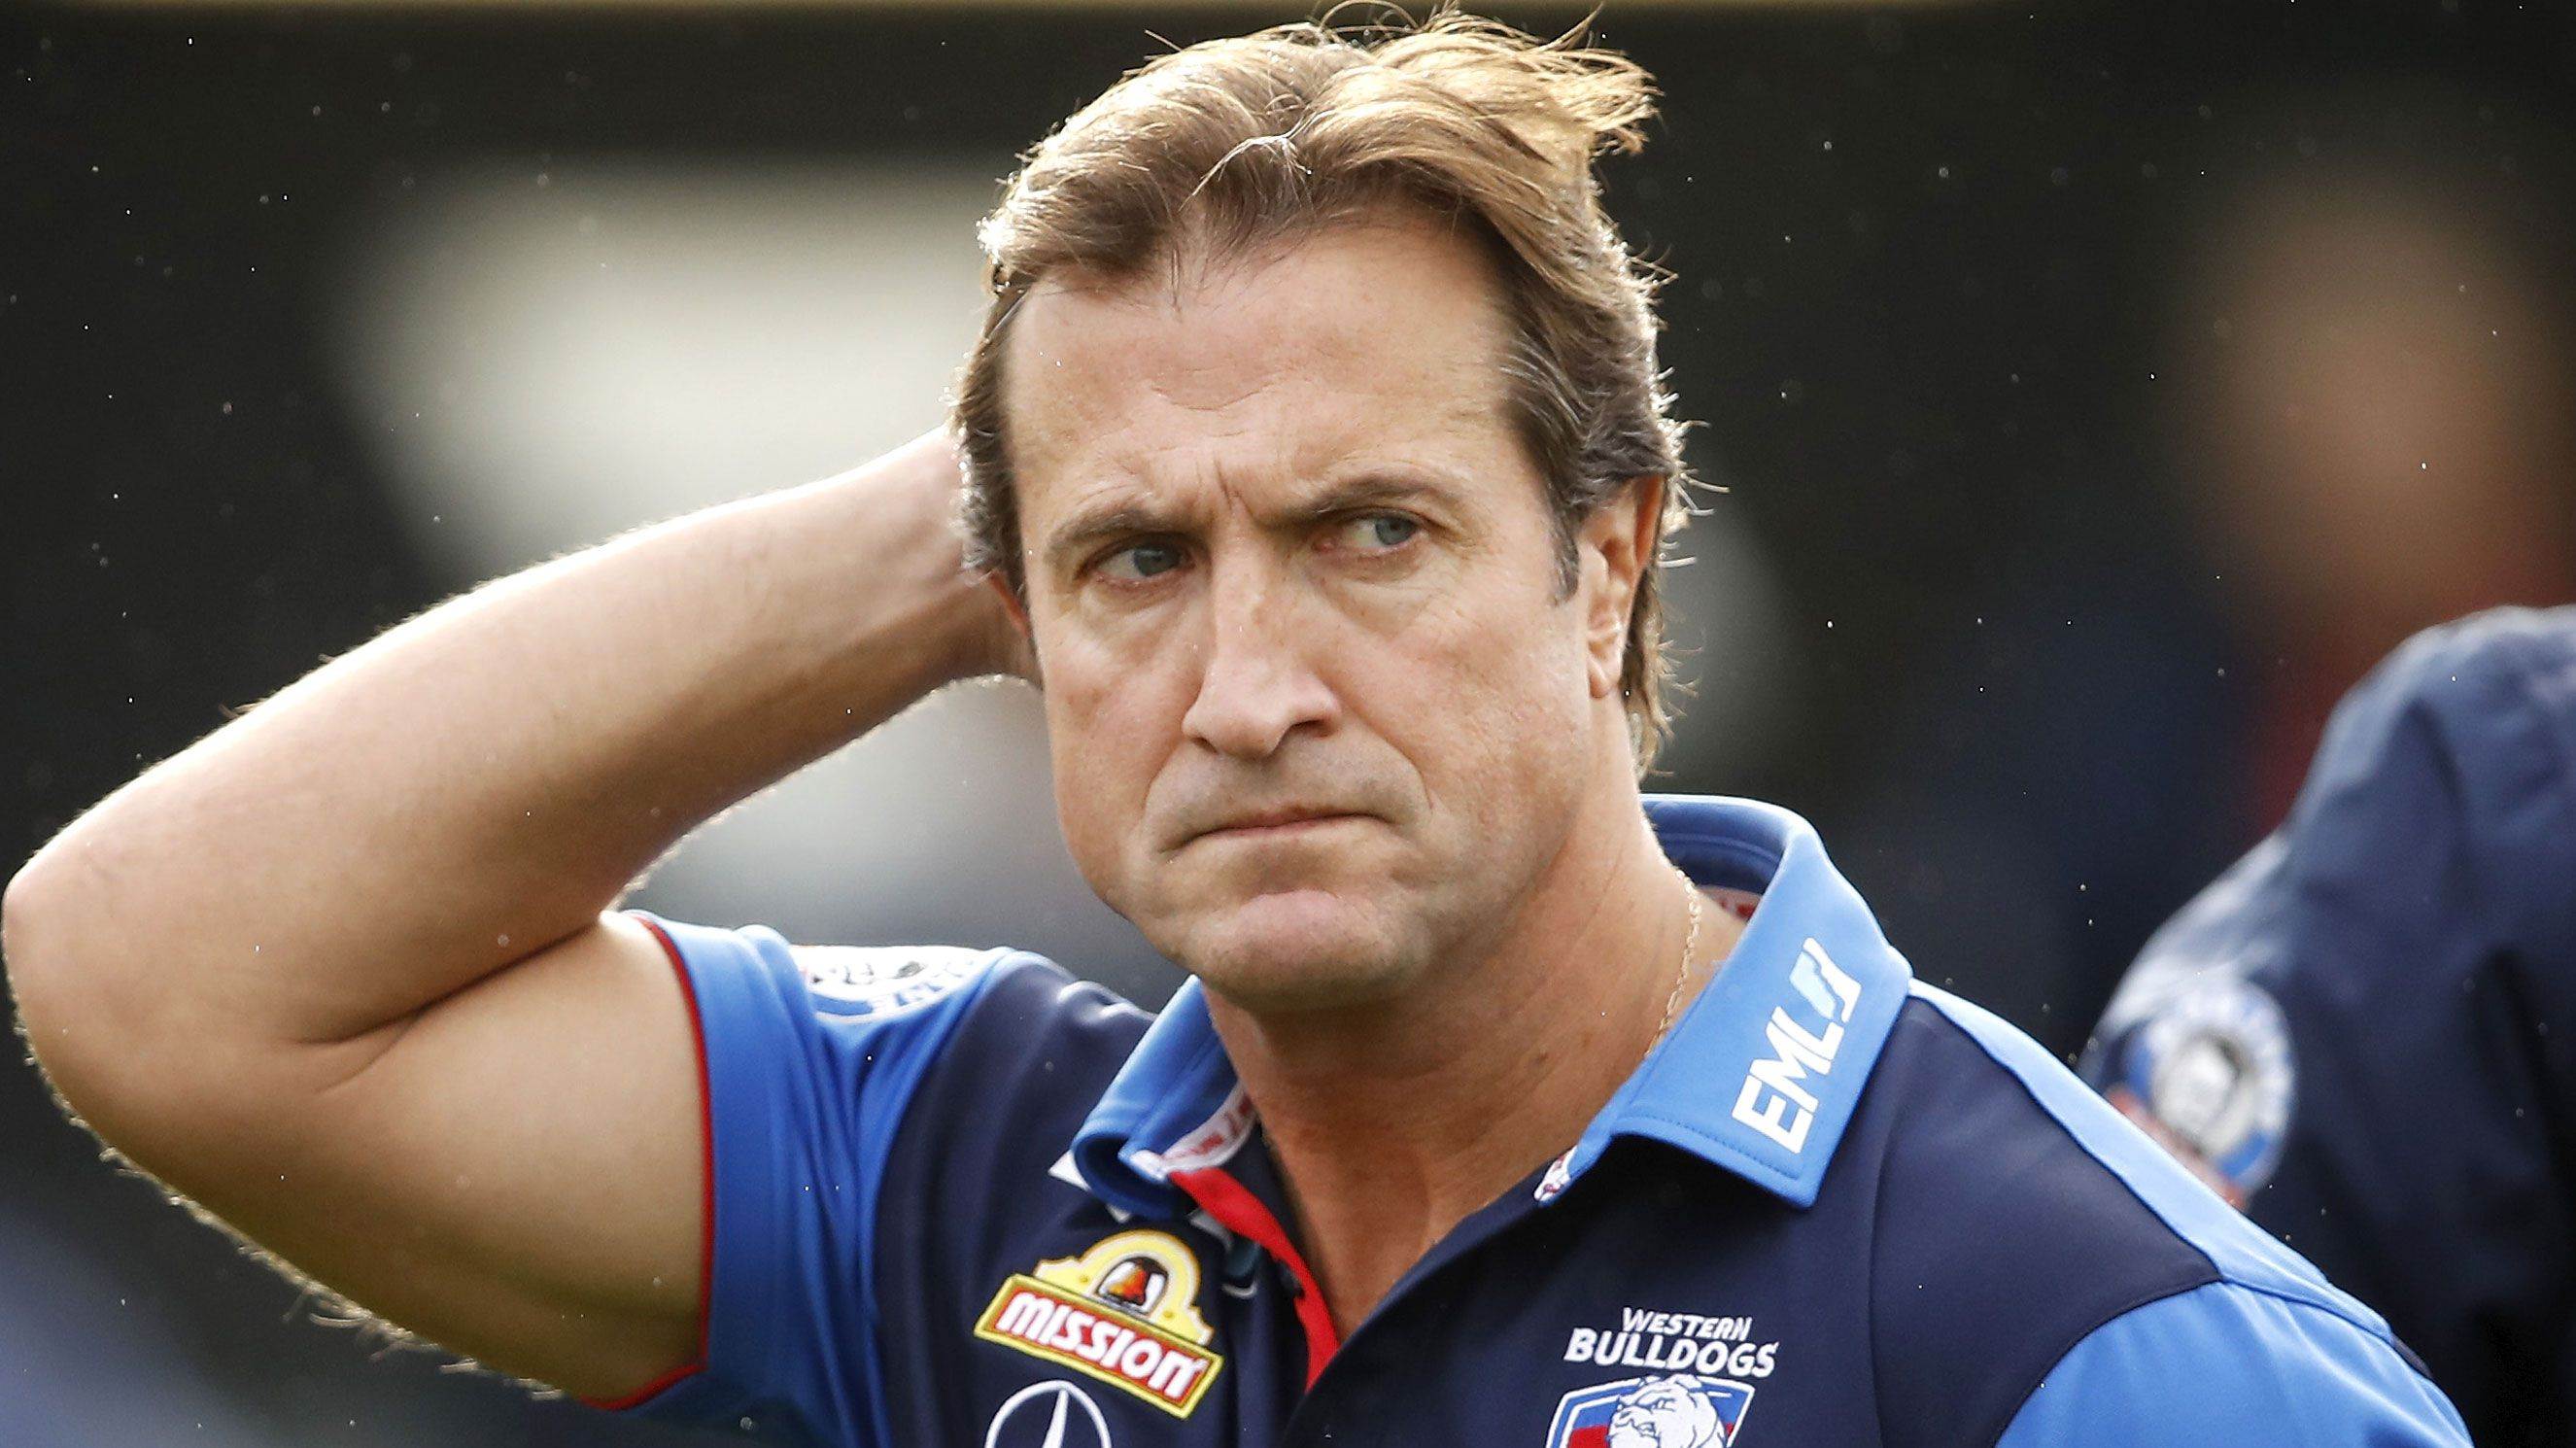 Western Bulldogs coach Luke Beveridge breaks down over Tom Boyd retirement